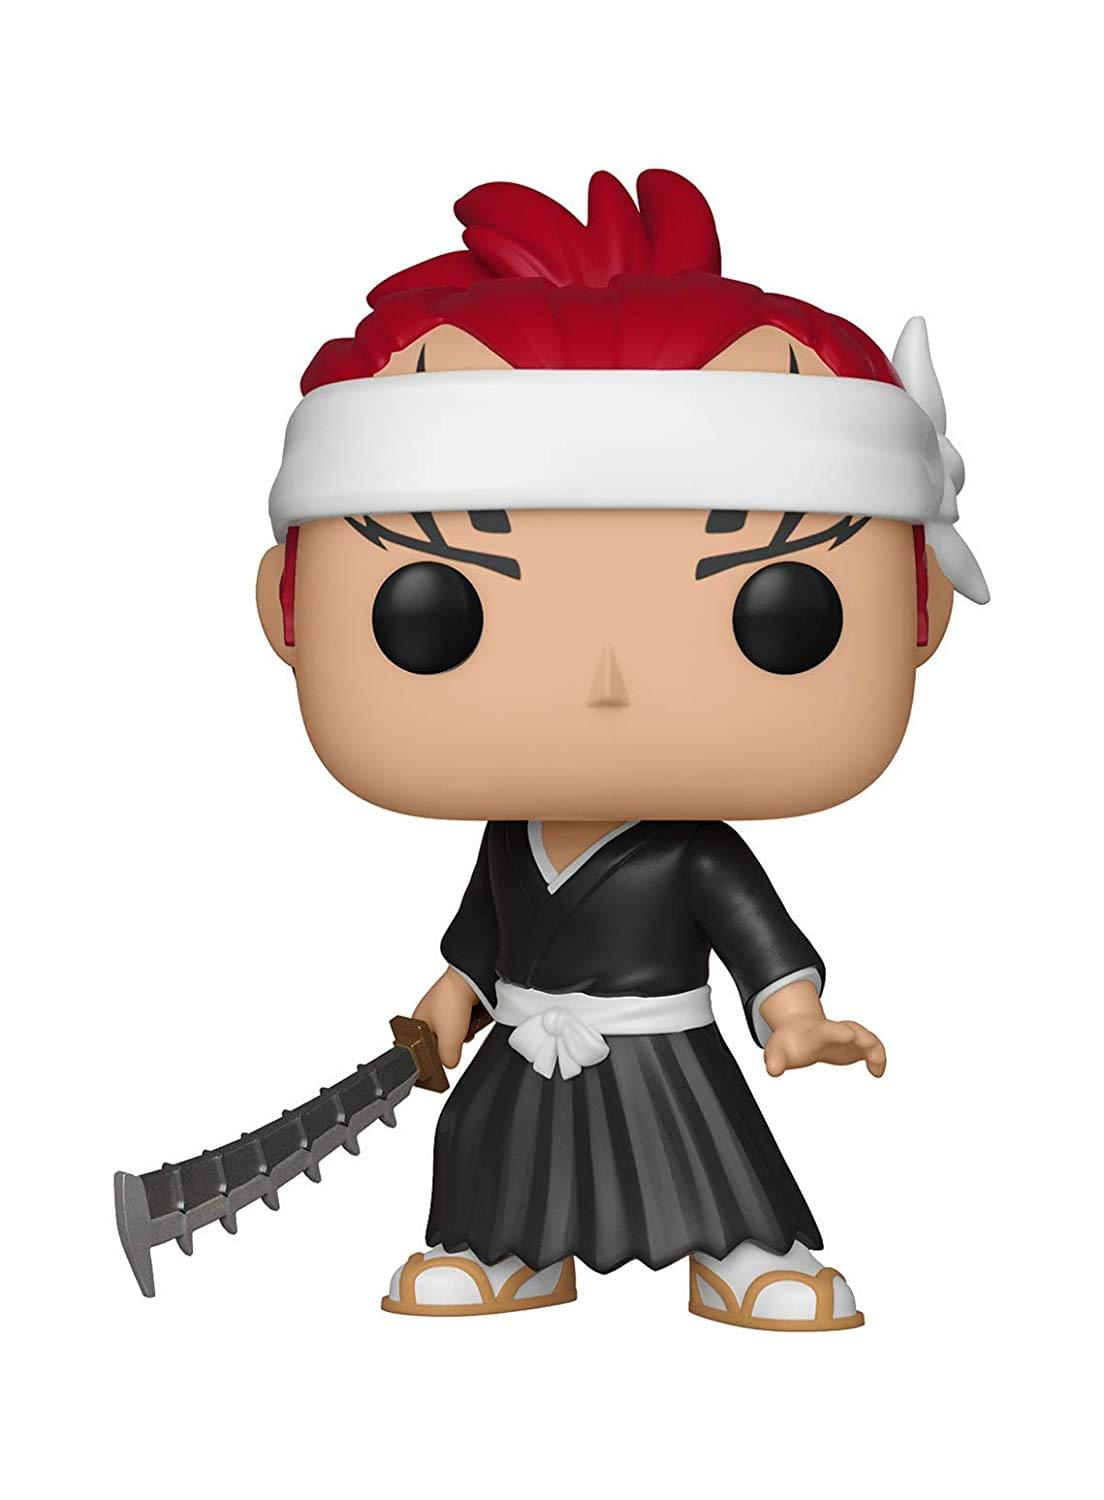 Bleach Funko POP Vinyl Figure - Renjin